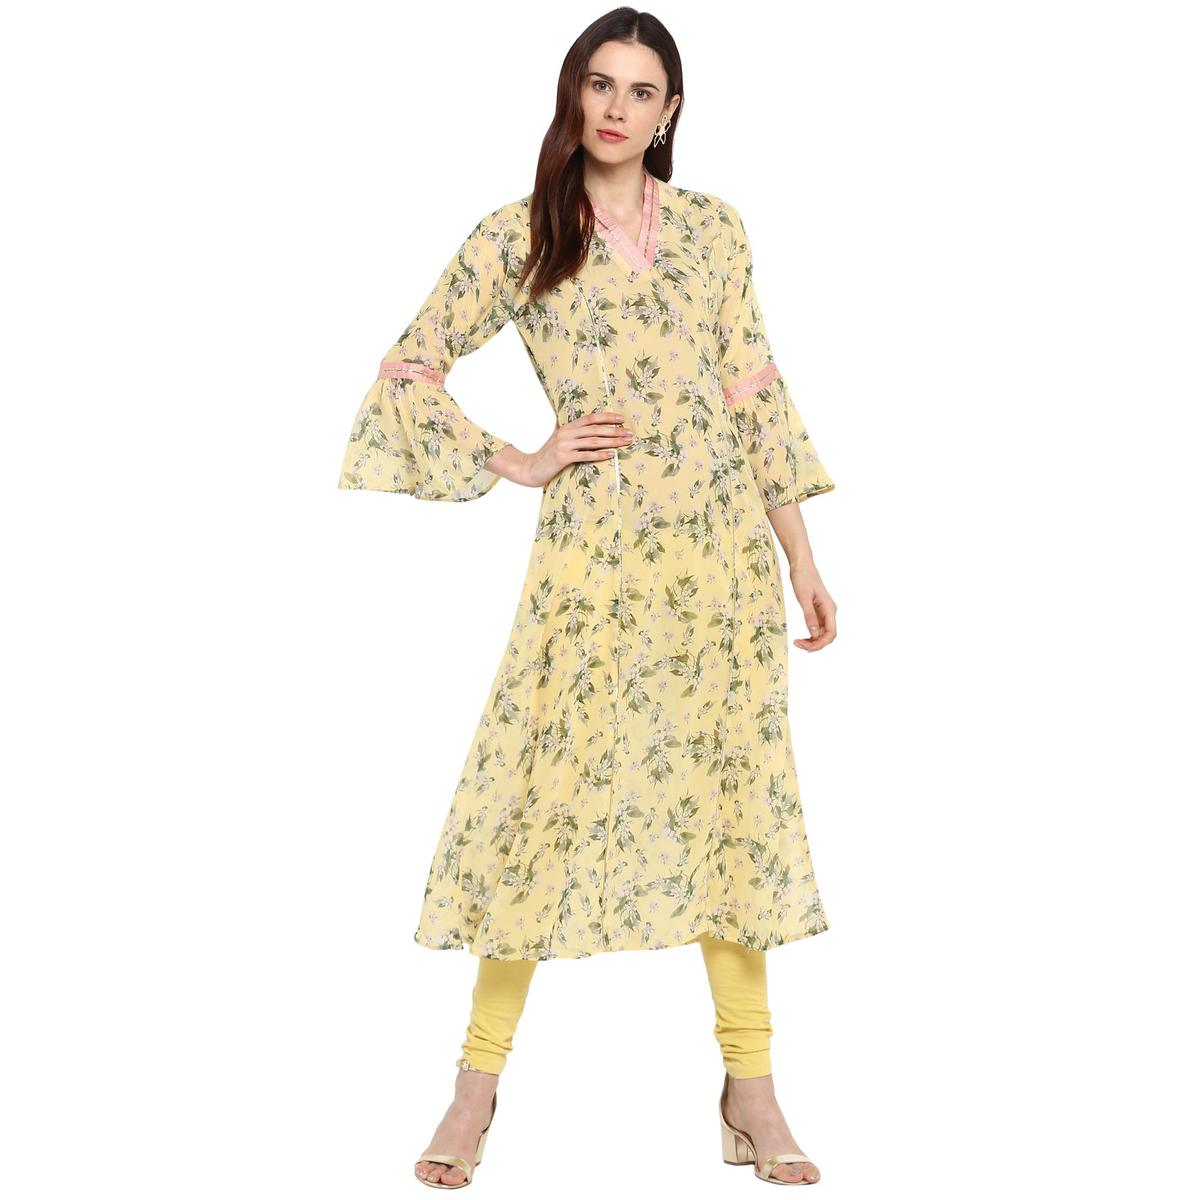 AHALYAA - Yellow Colored Casual Floral Flared See Through Georgette Kurta with Fit & Flared Sleeves